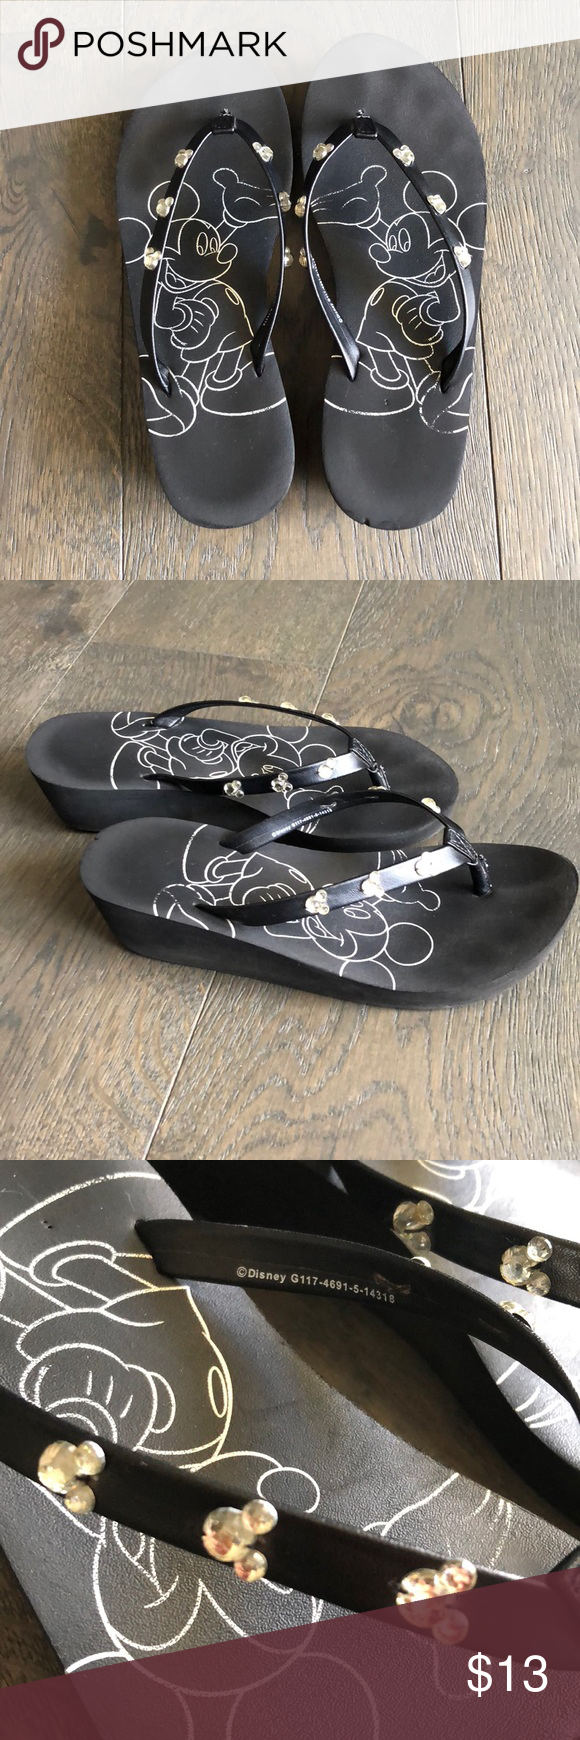 f827904e9 Black with Mickey rhinestones. Used but still have a lot of life! Disney  Shoes Sandals